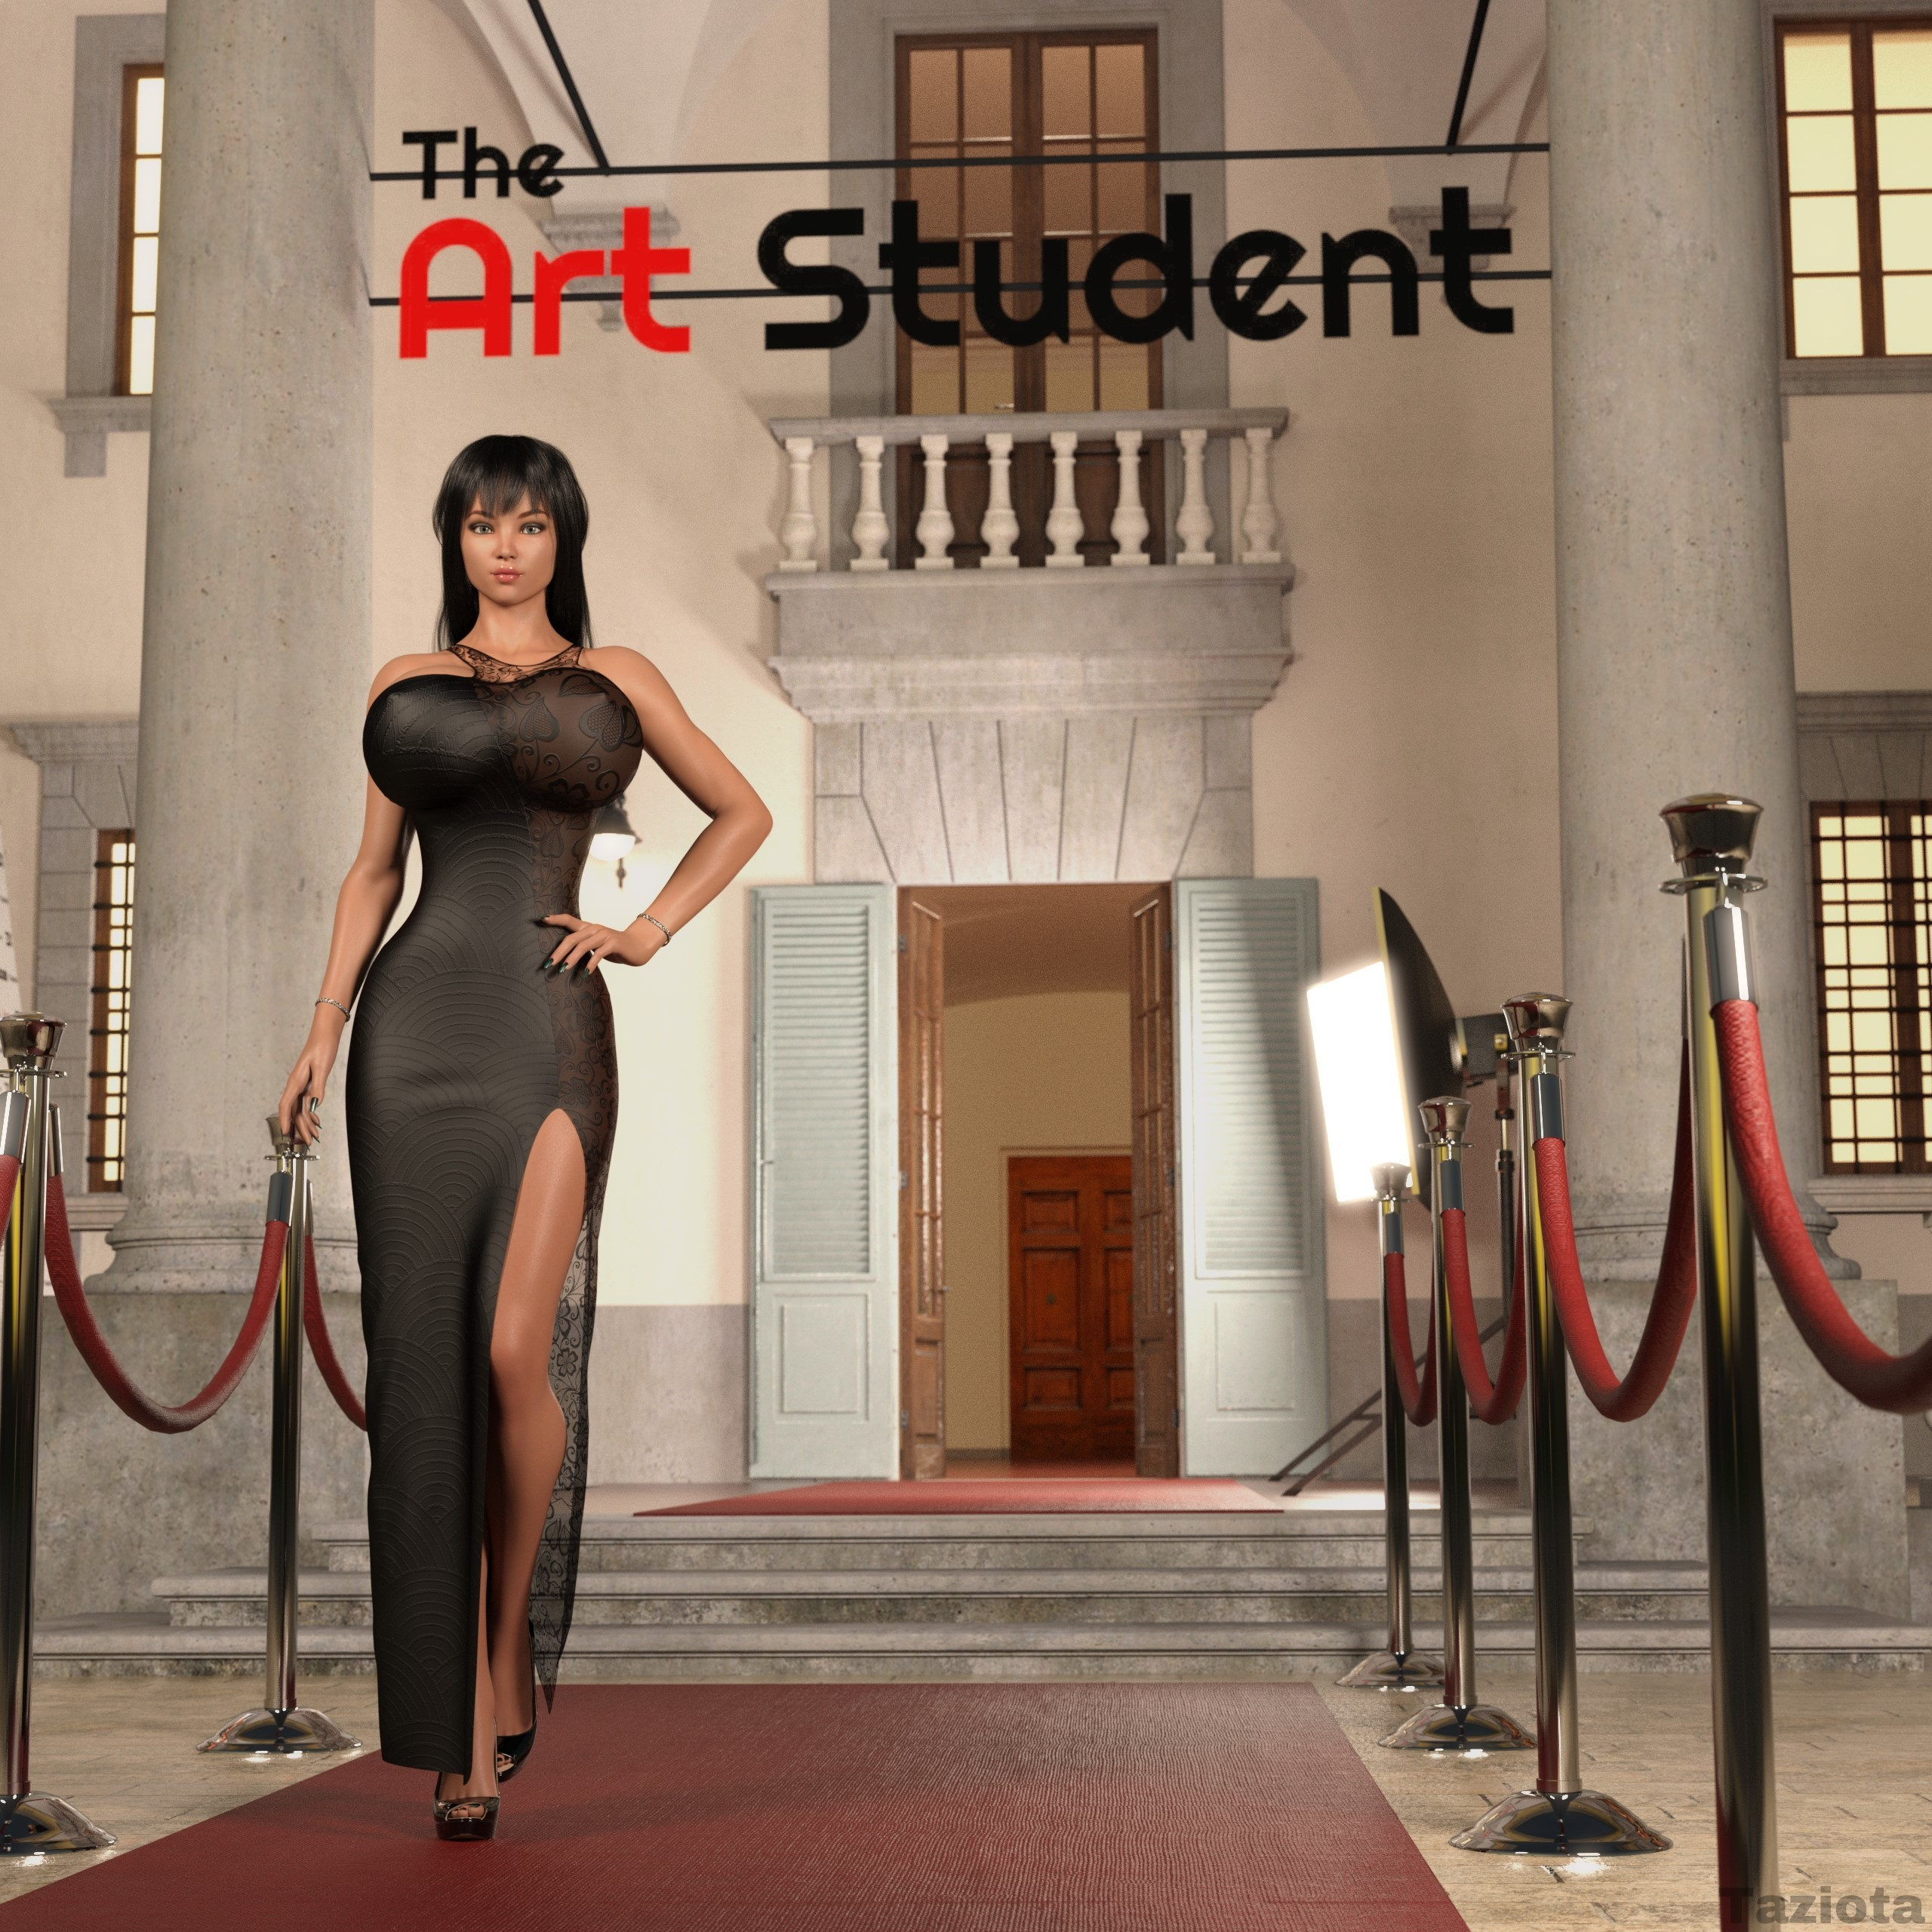 Premiere Party: The Art Student